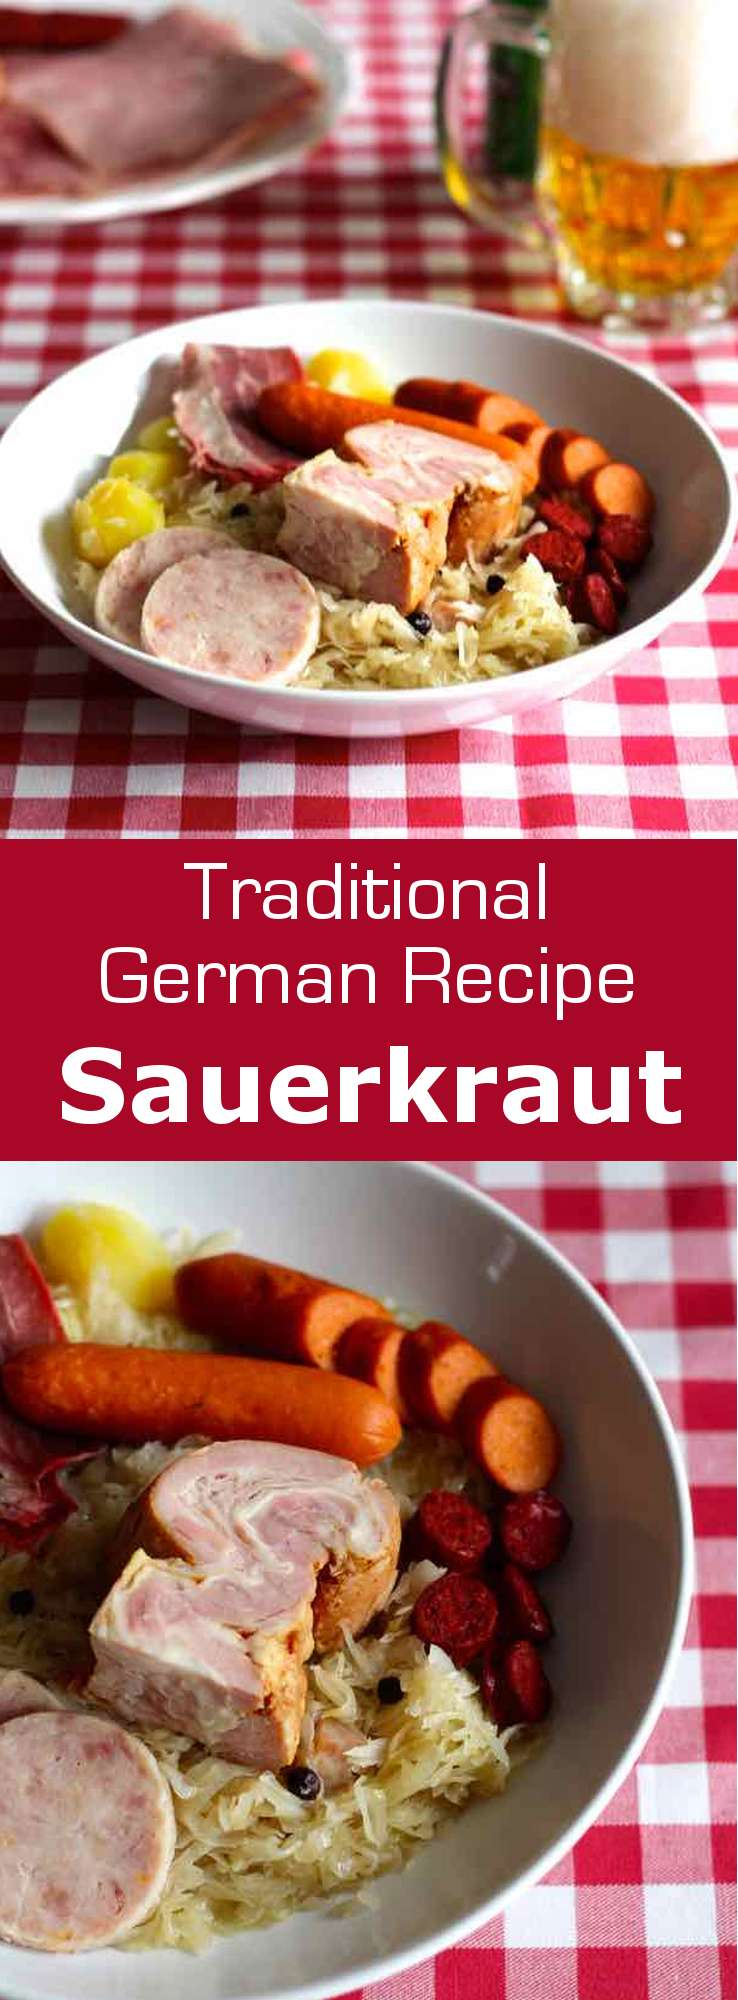 Sauerkraut is a traditional German and Alsatian recipe of brined cabbage served with sausages, deli meats and potatoes. #German #Alsatian #pork #worldcusine #196flavors